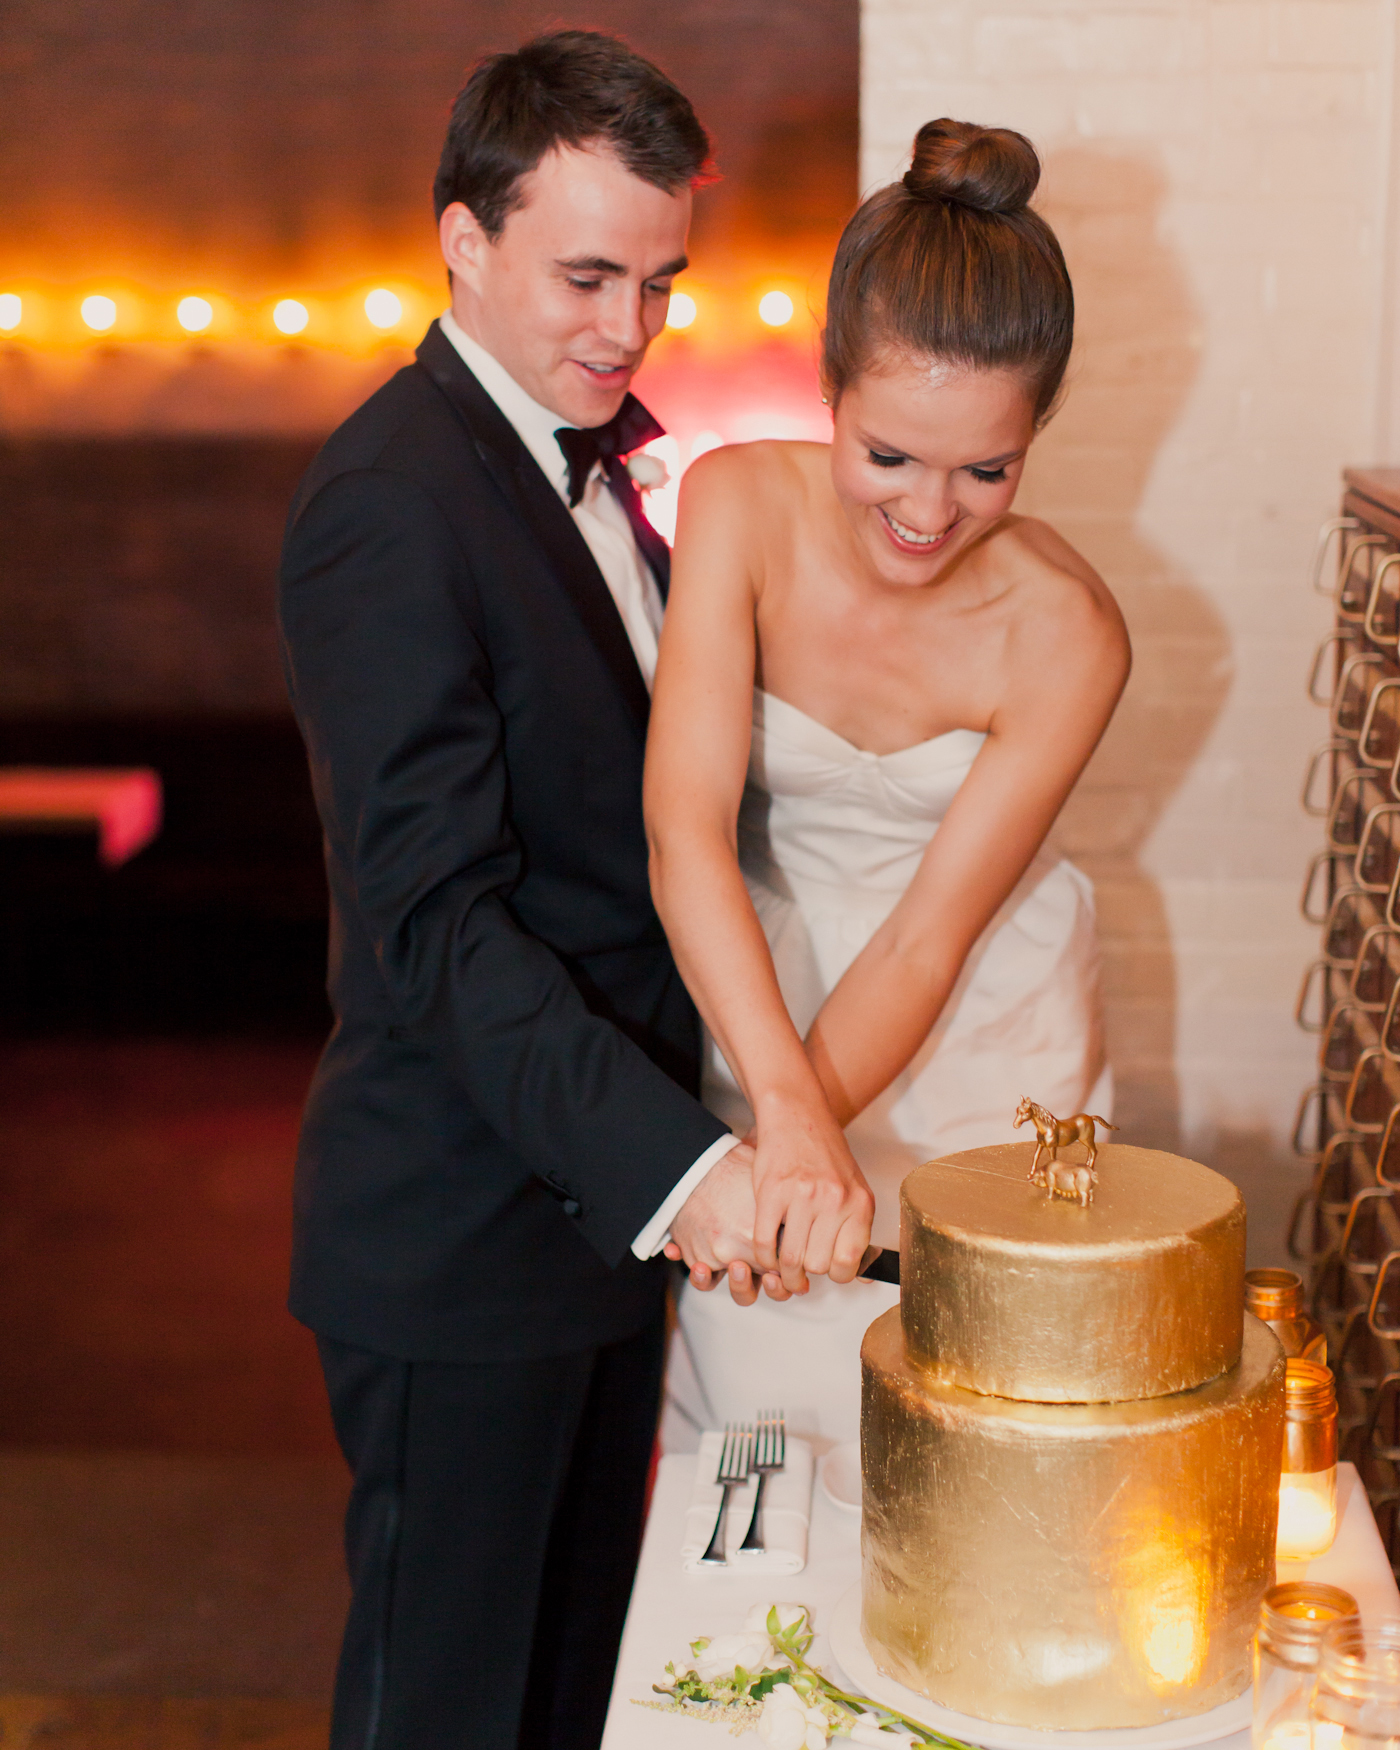 The Cake Cutting